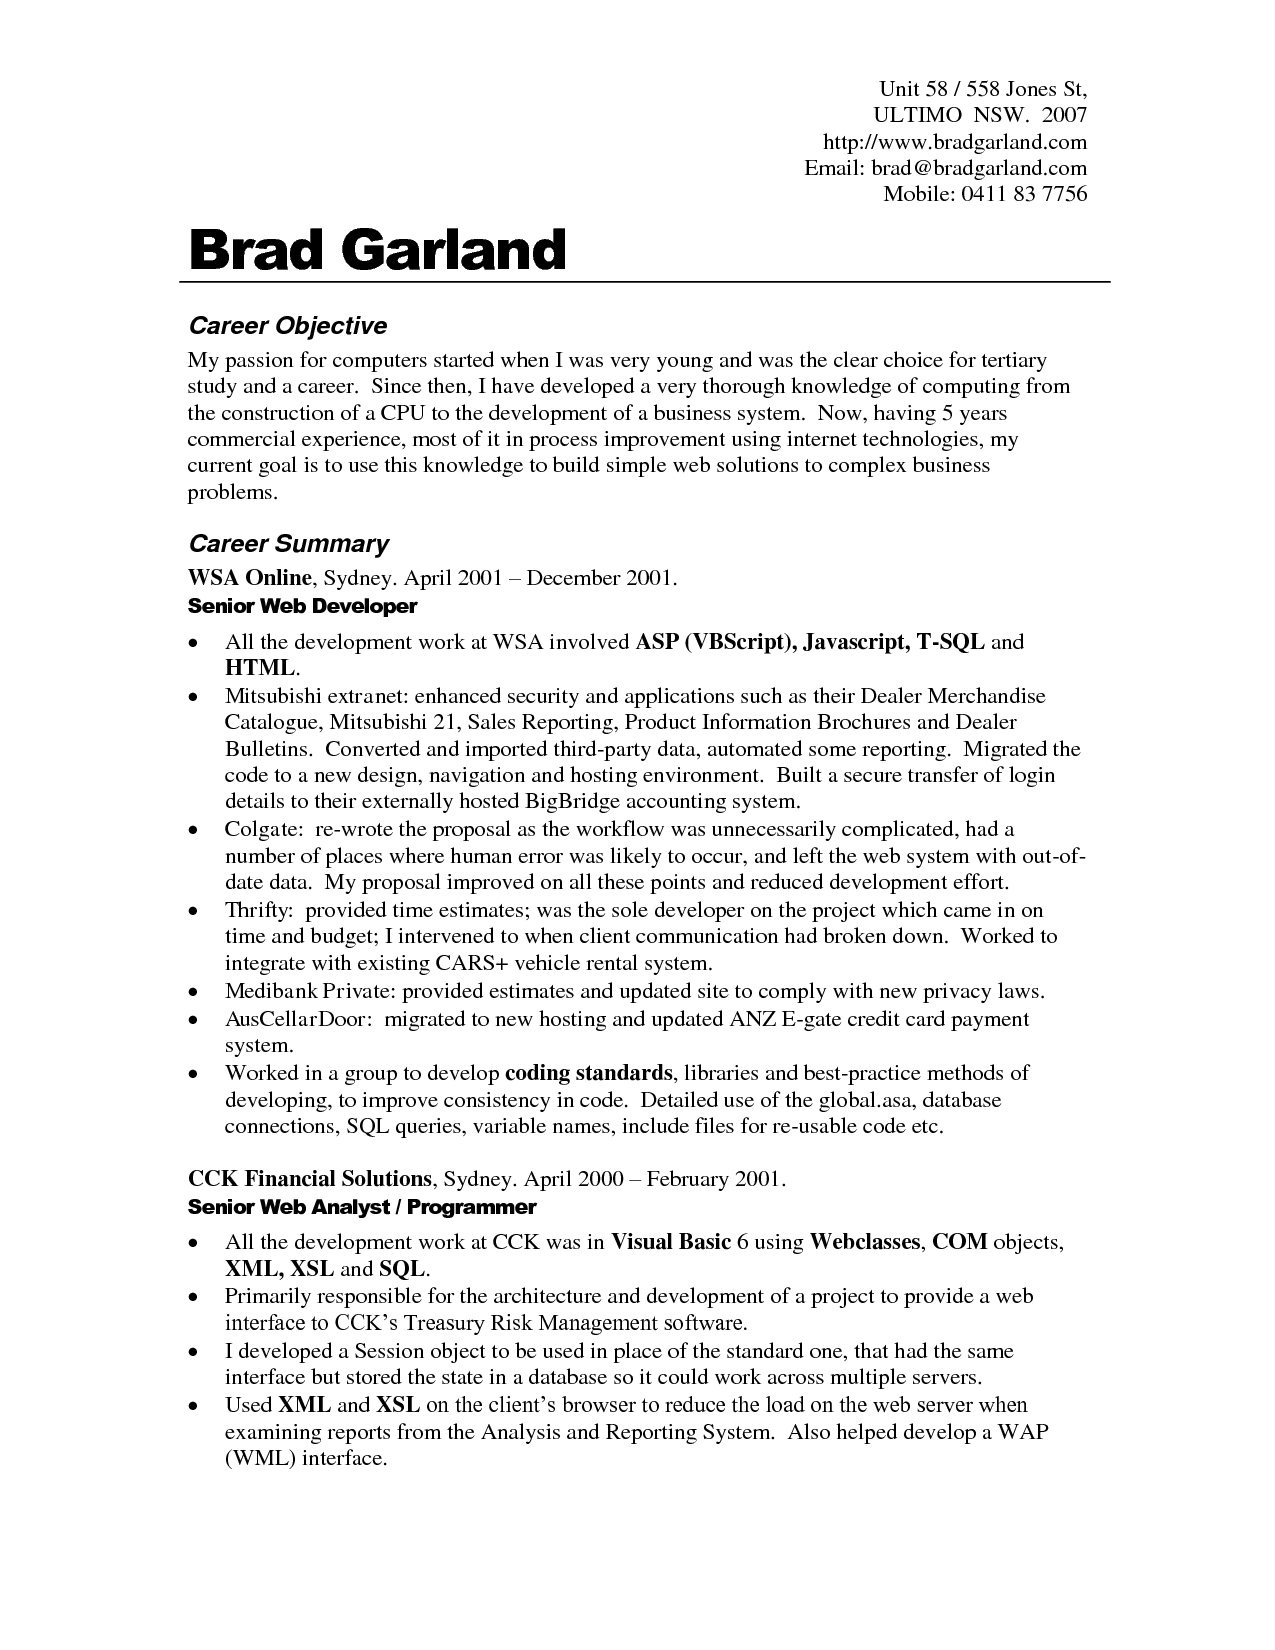 Good Resume Objective Resume Objectives Examples Best Templateresume Objective Examples